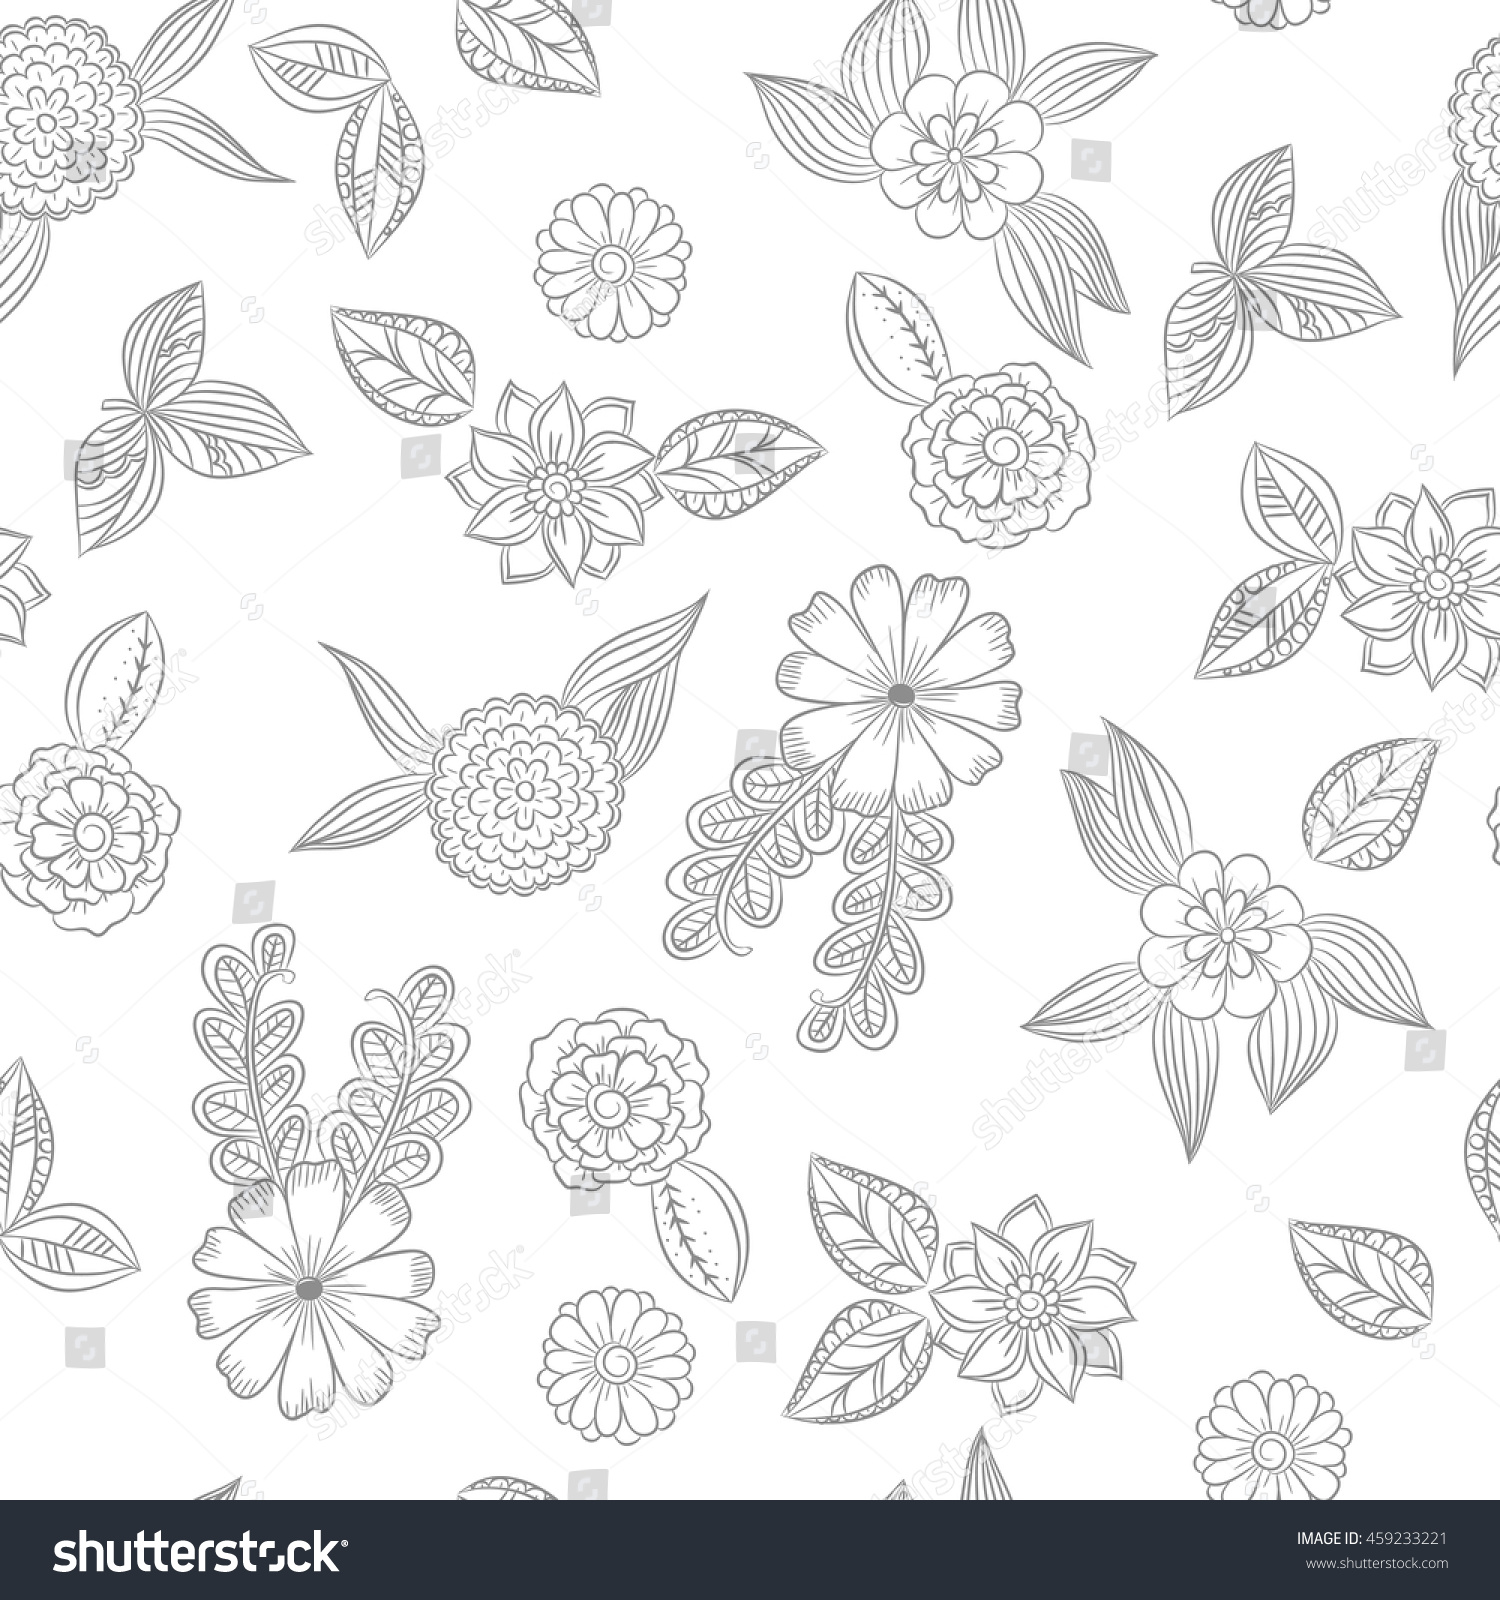 Vector Seamles Floral Pattern Black White Stock Vector